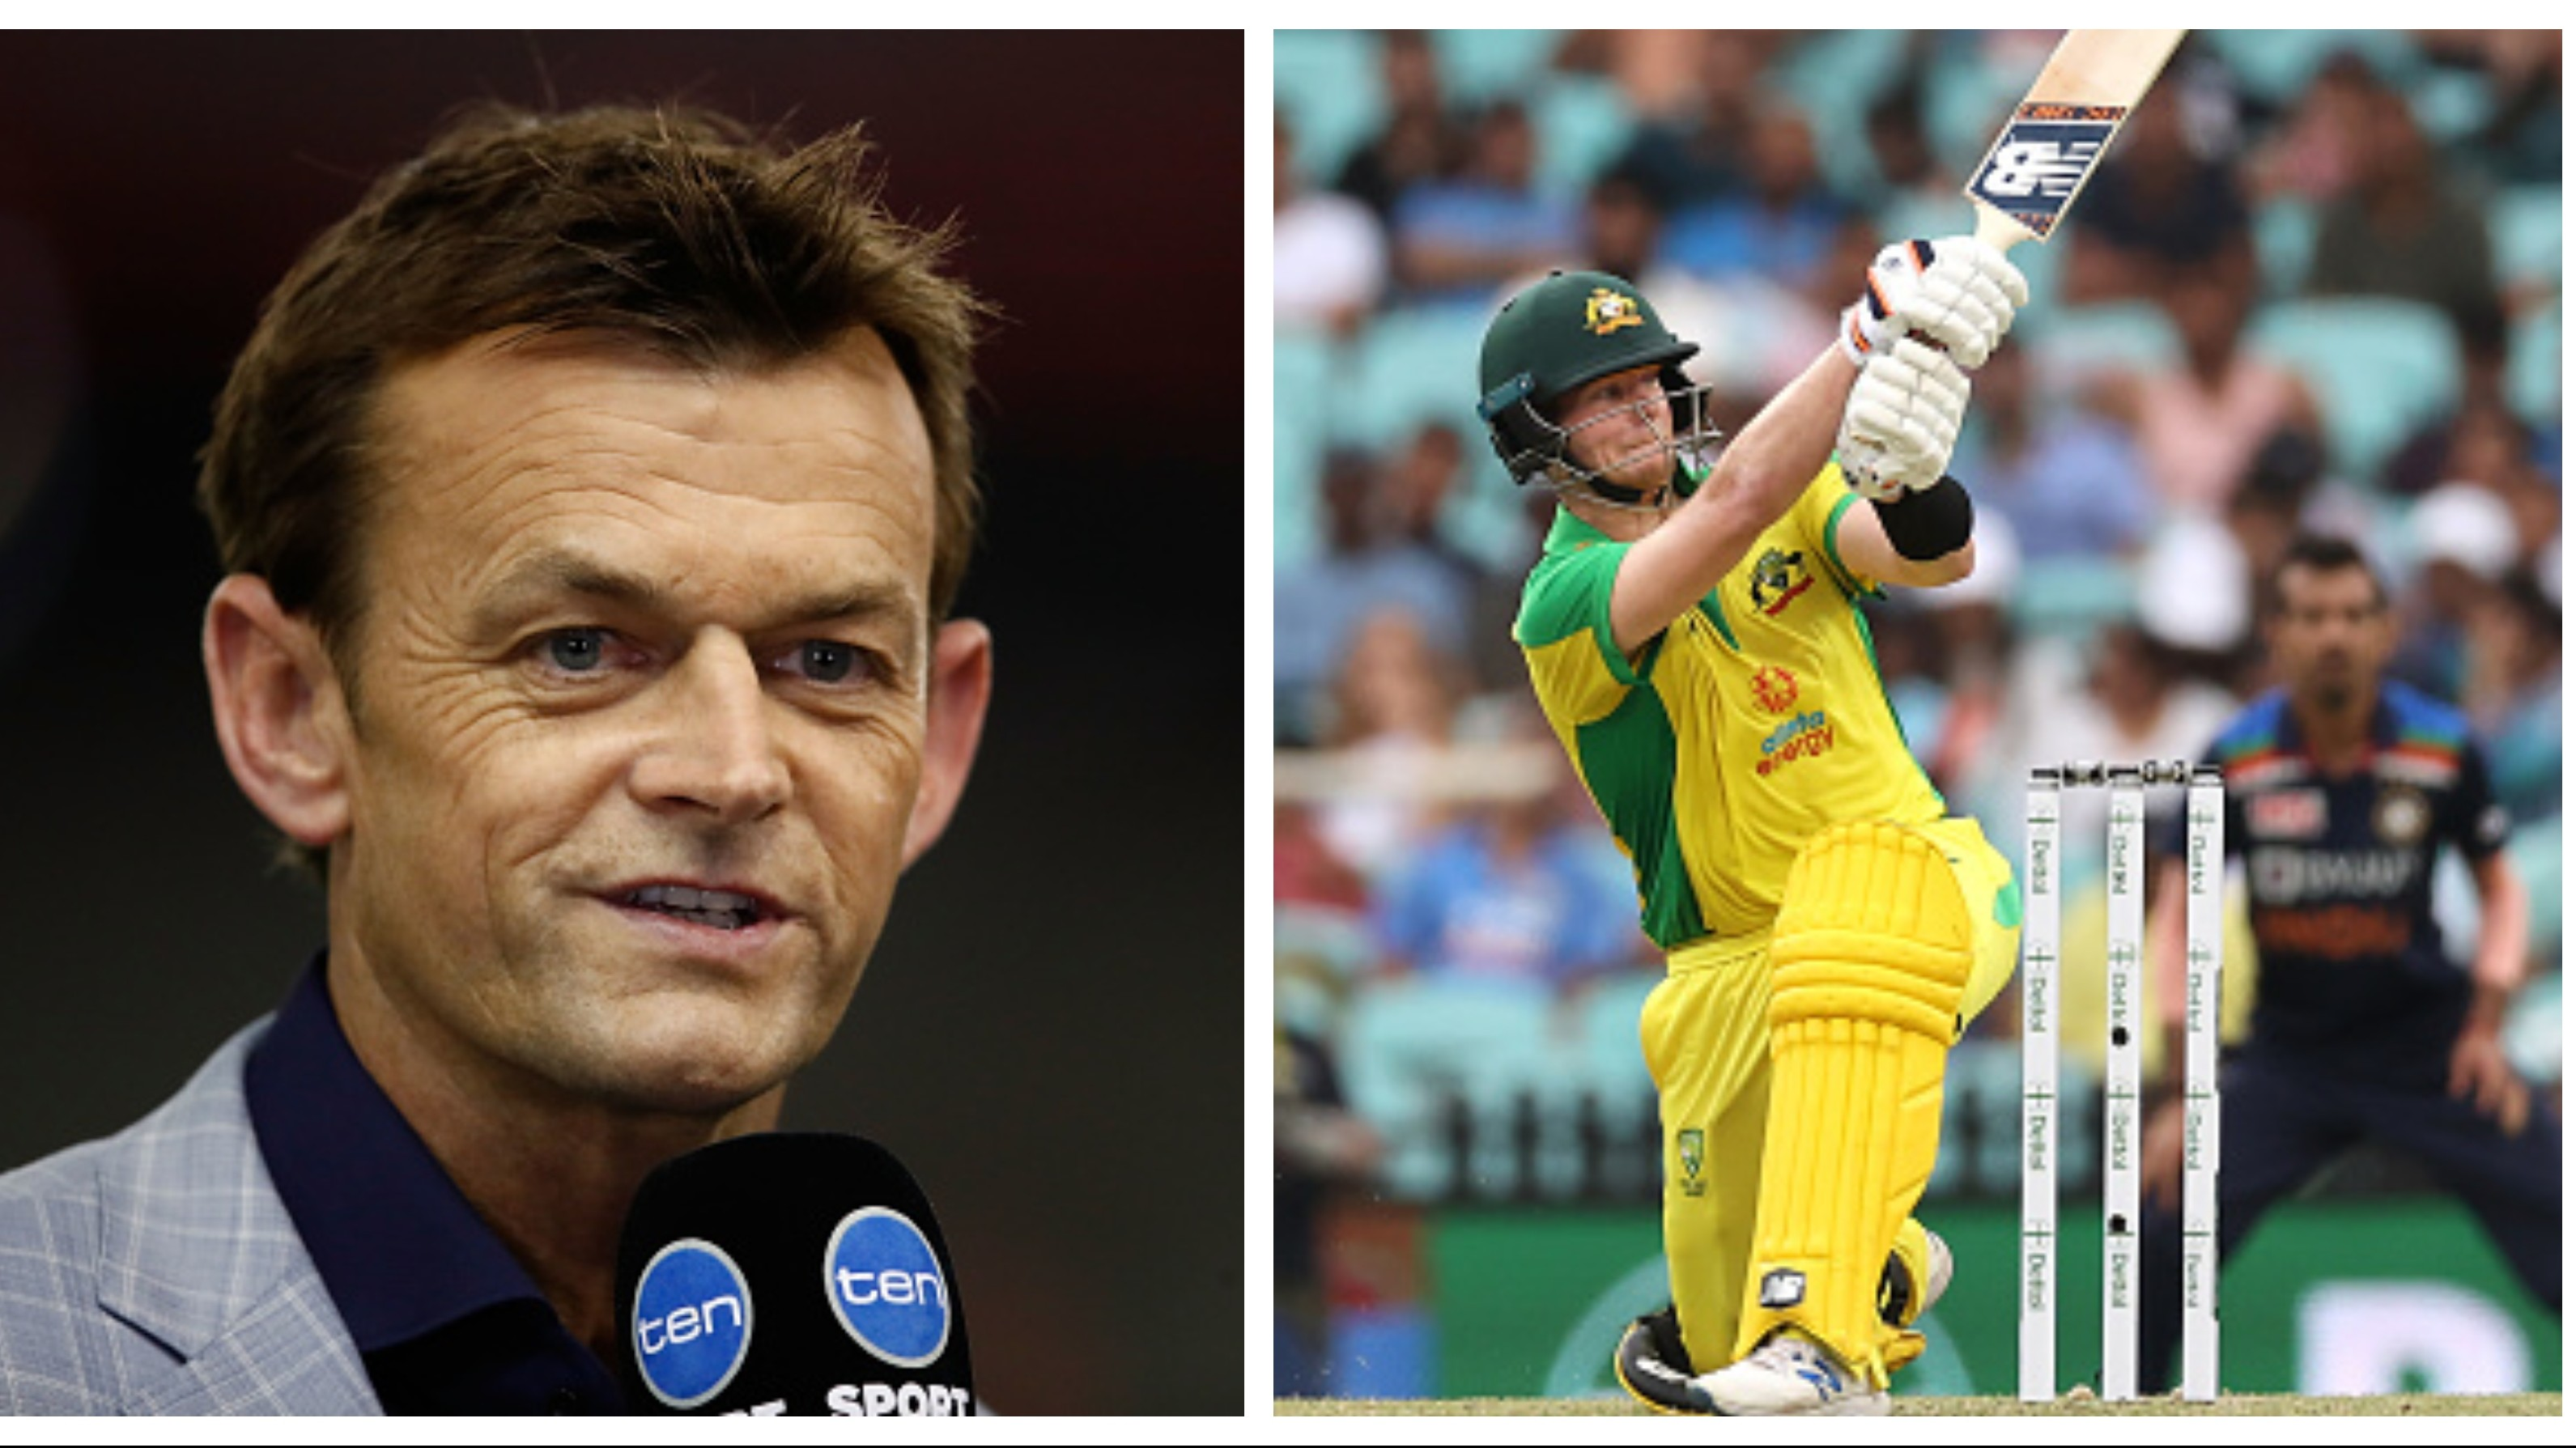 AUS v IND 2020-21: Adam Gilchrist lauds Steve Smith's expanded range after successive ODI tons